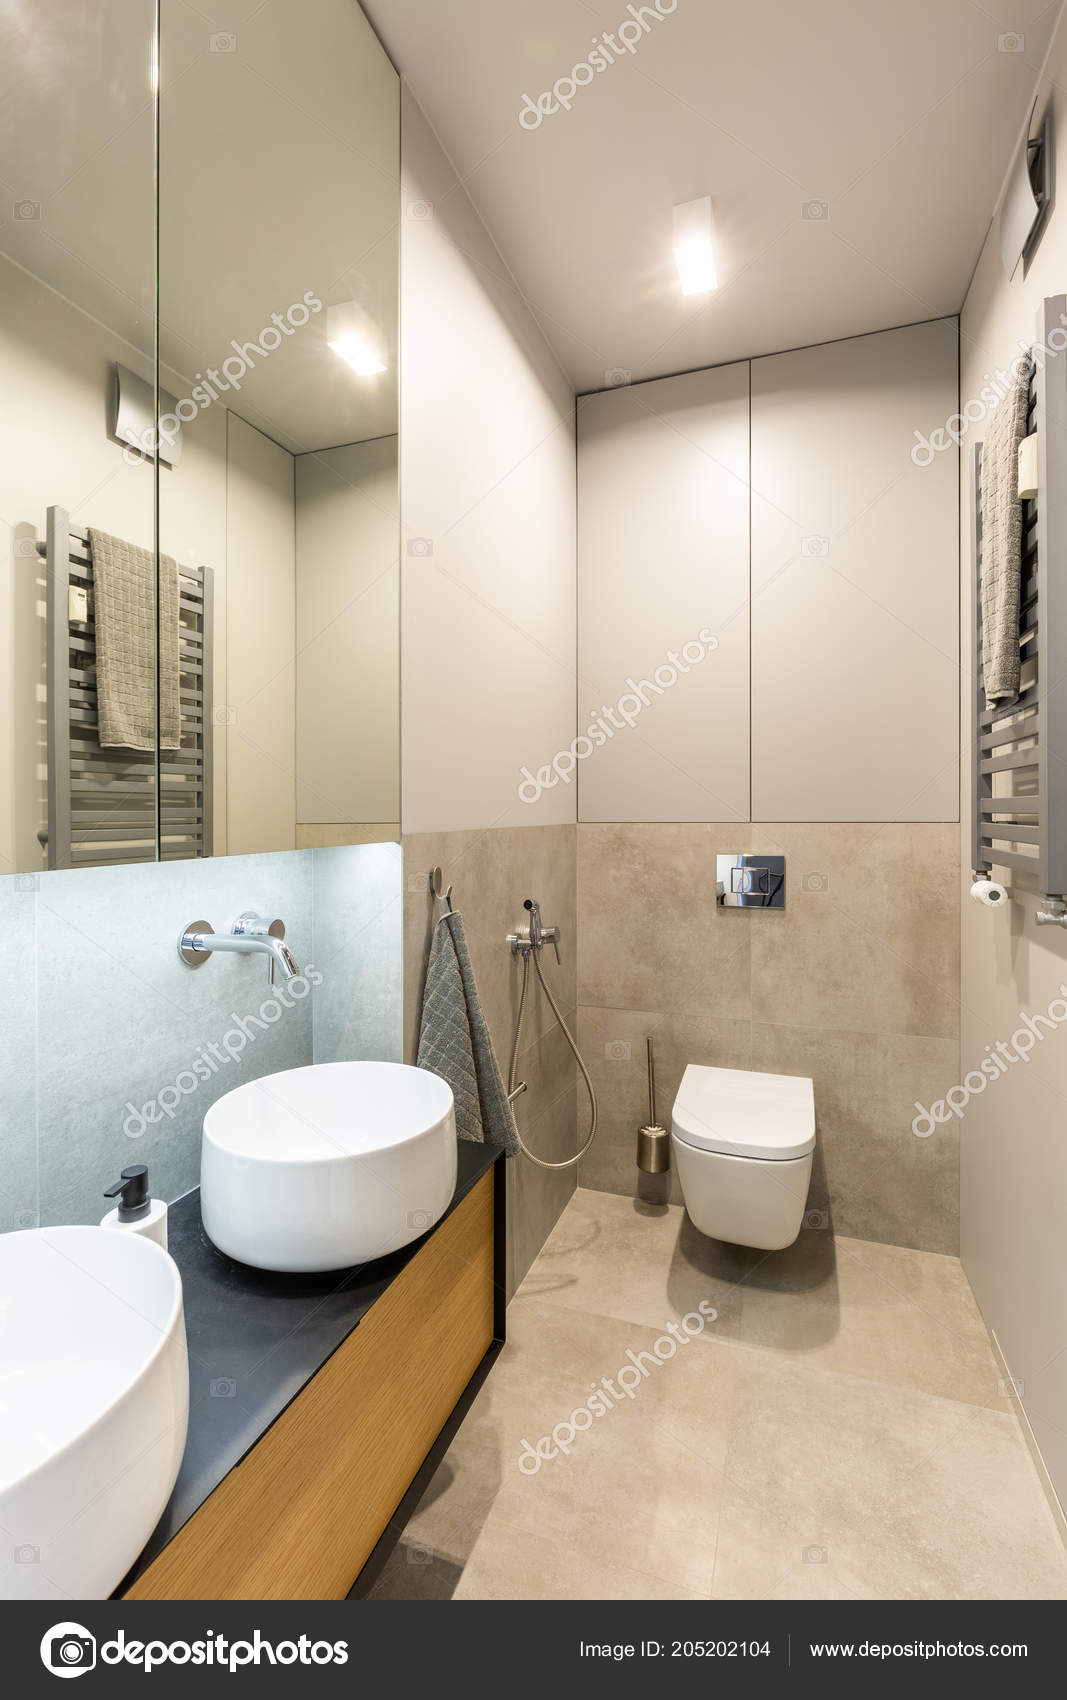 Ceramic Washbasins And Toilet In A Modern, Fancy Bathroom Interior With  Beige, Marble Tiles And Wooden Furnitureu2013 Stock Image